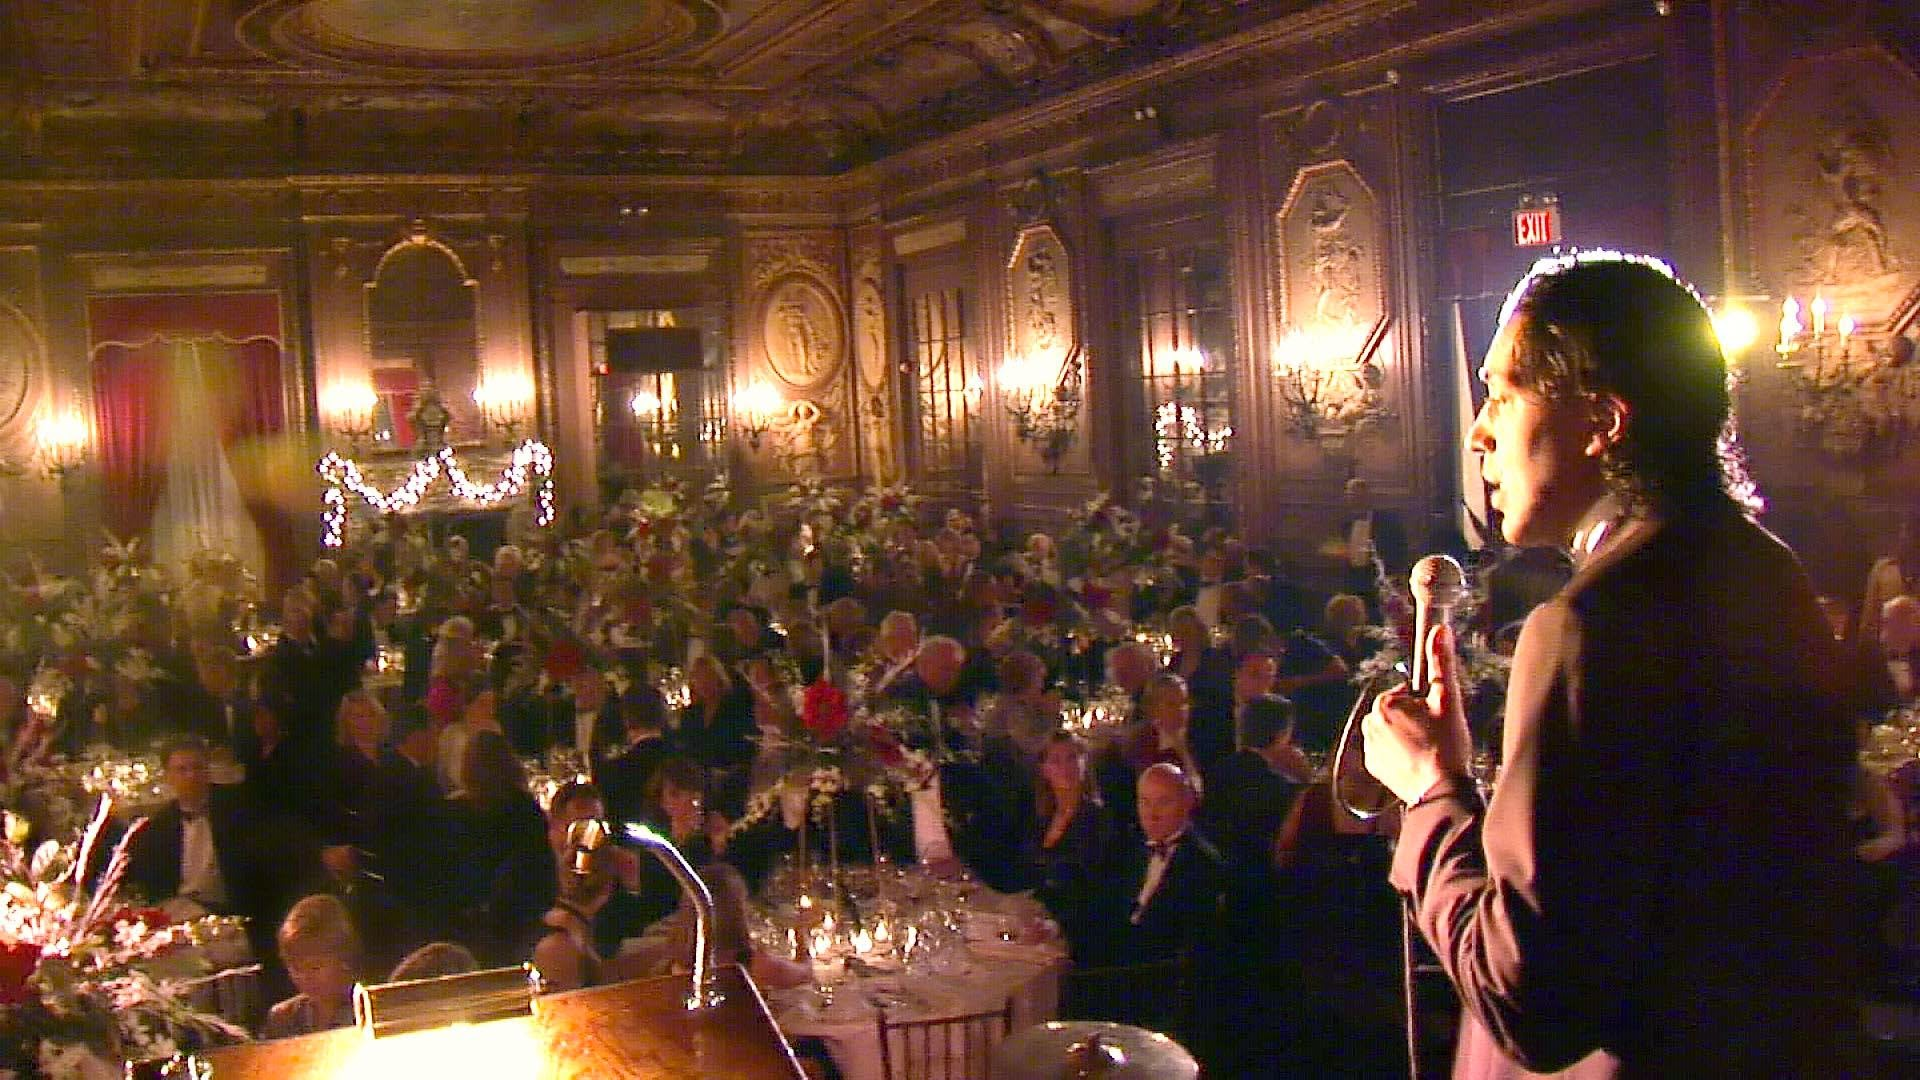 Photo: Cherno Jobatey doing his routine at the Metropolitan Club New York during the anual YFU Christmas Charity Gala   www.cherno-jobatey.de/ in English: www.cherno.com/